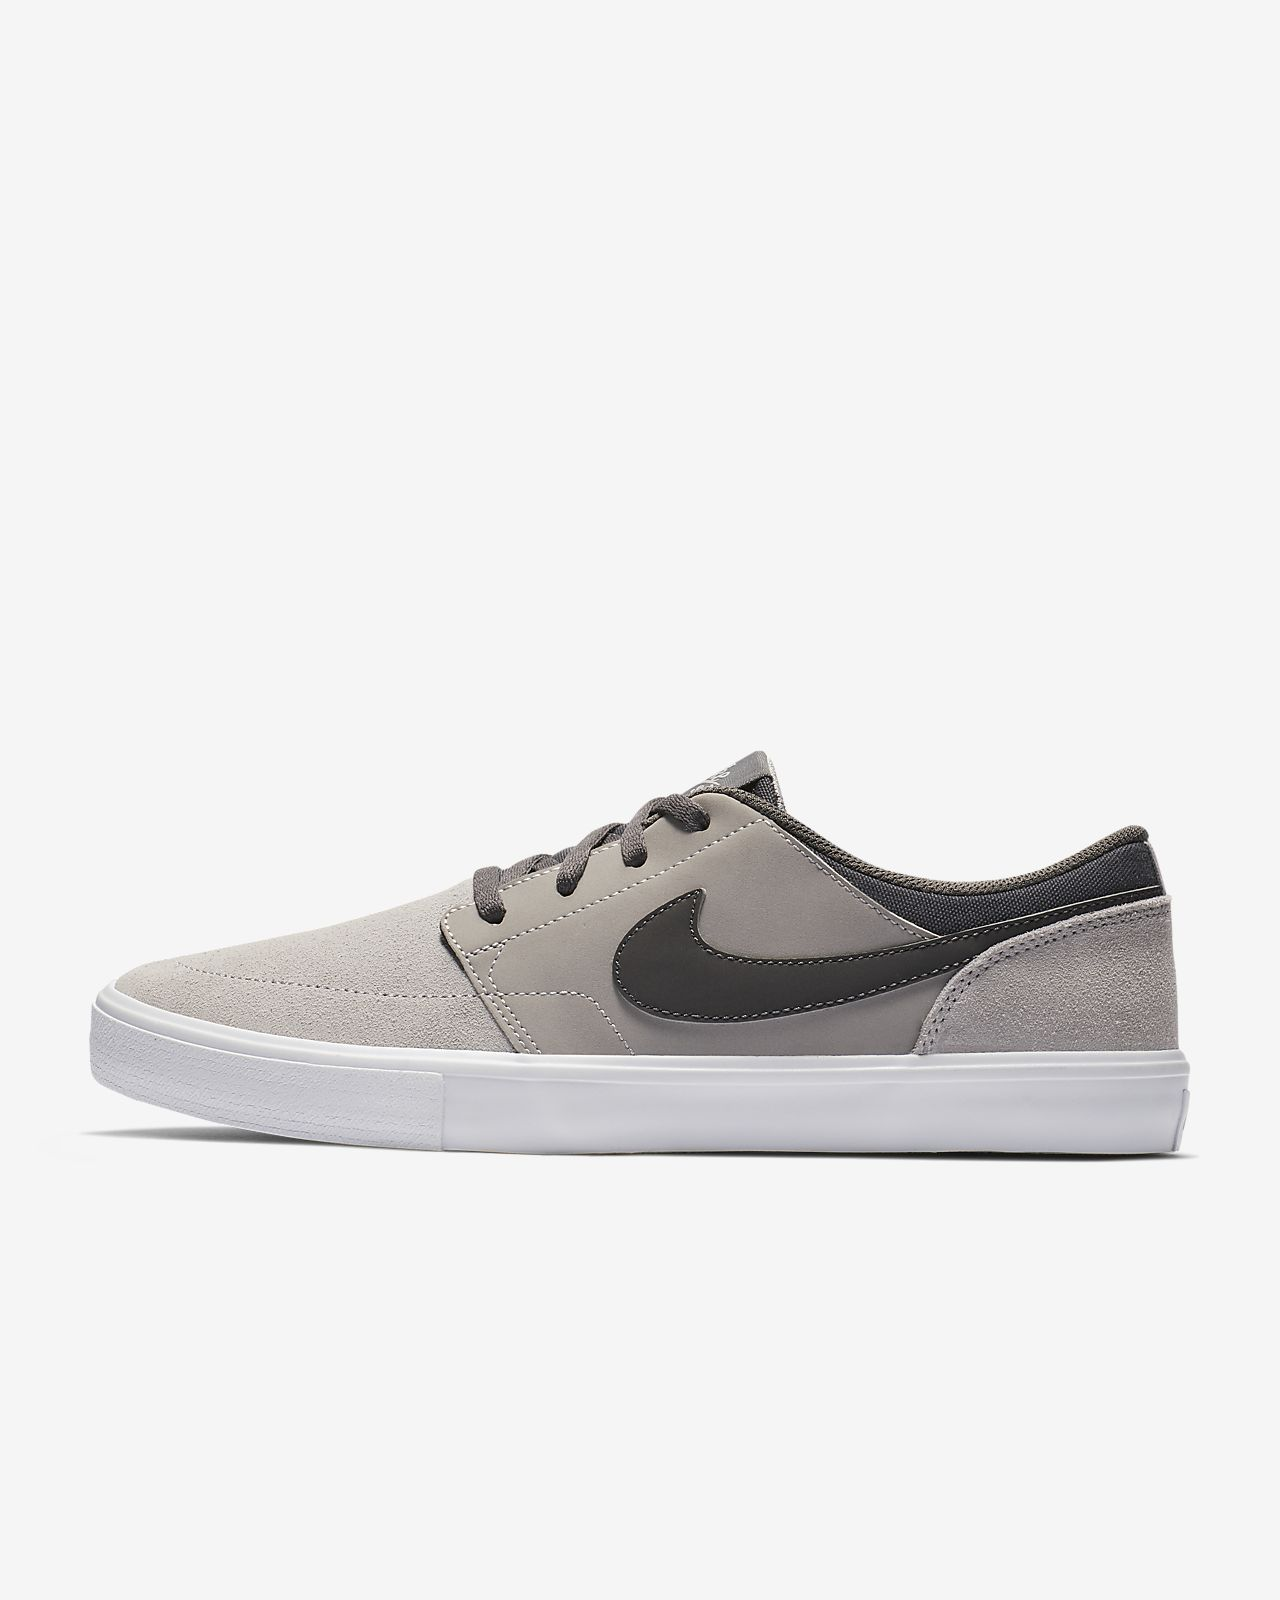 brand new ff696 5cacf ... Chaussure de skateboard Nike SB Solarsoft Portmore II pour Homme